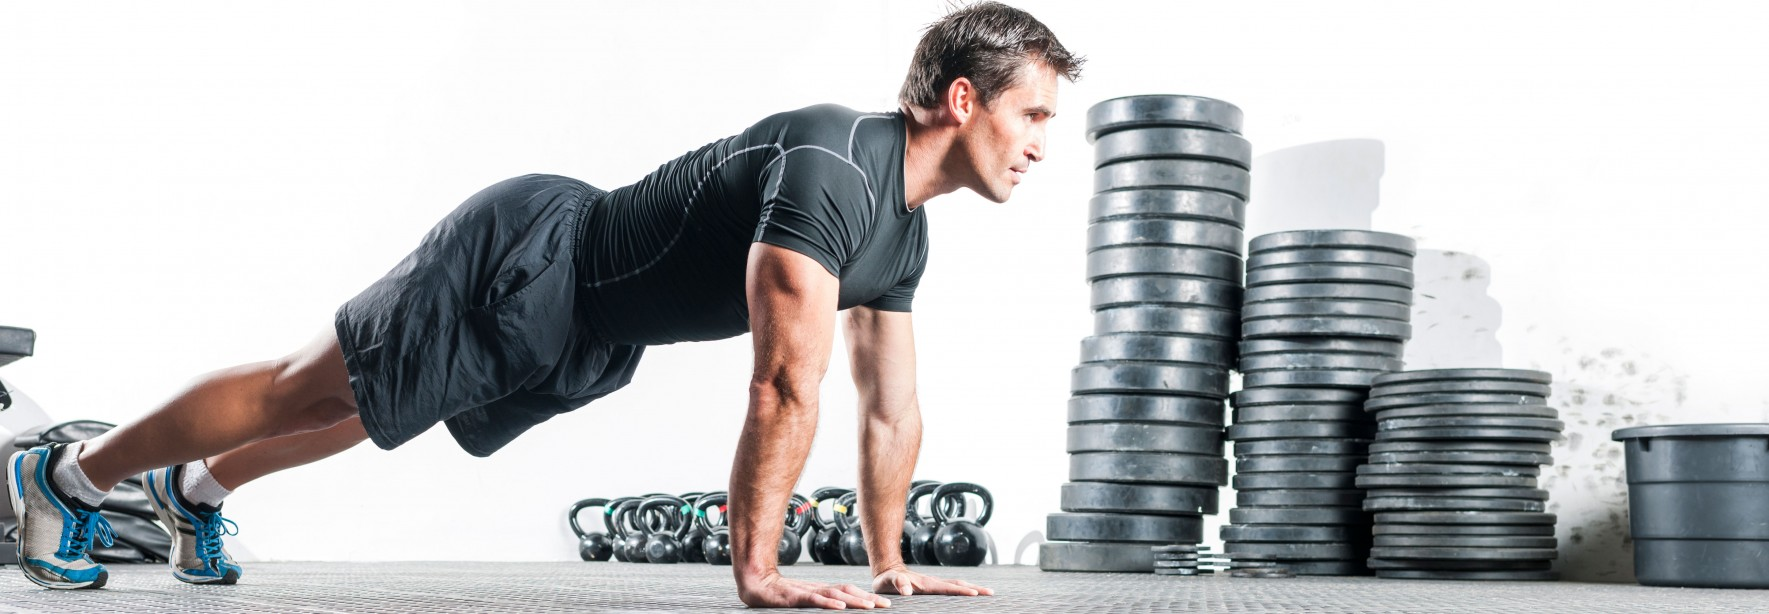 Pushup GettyImages 557941267